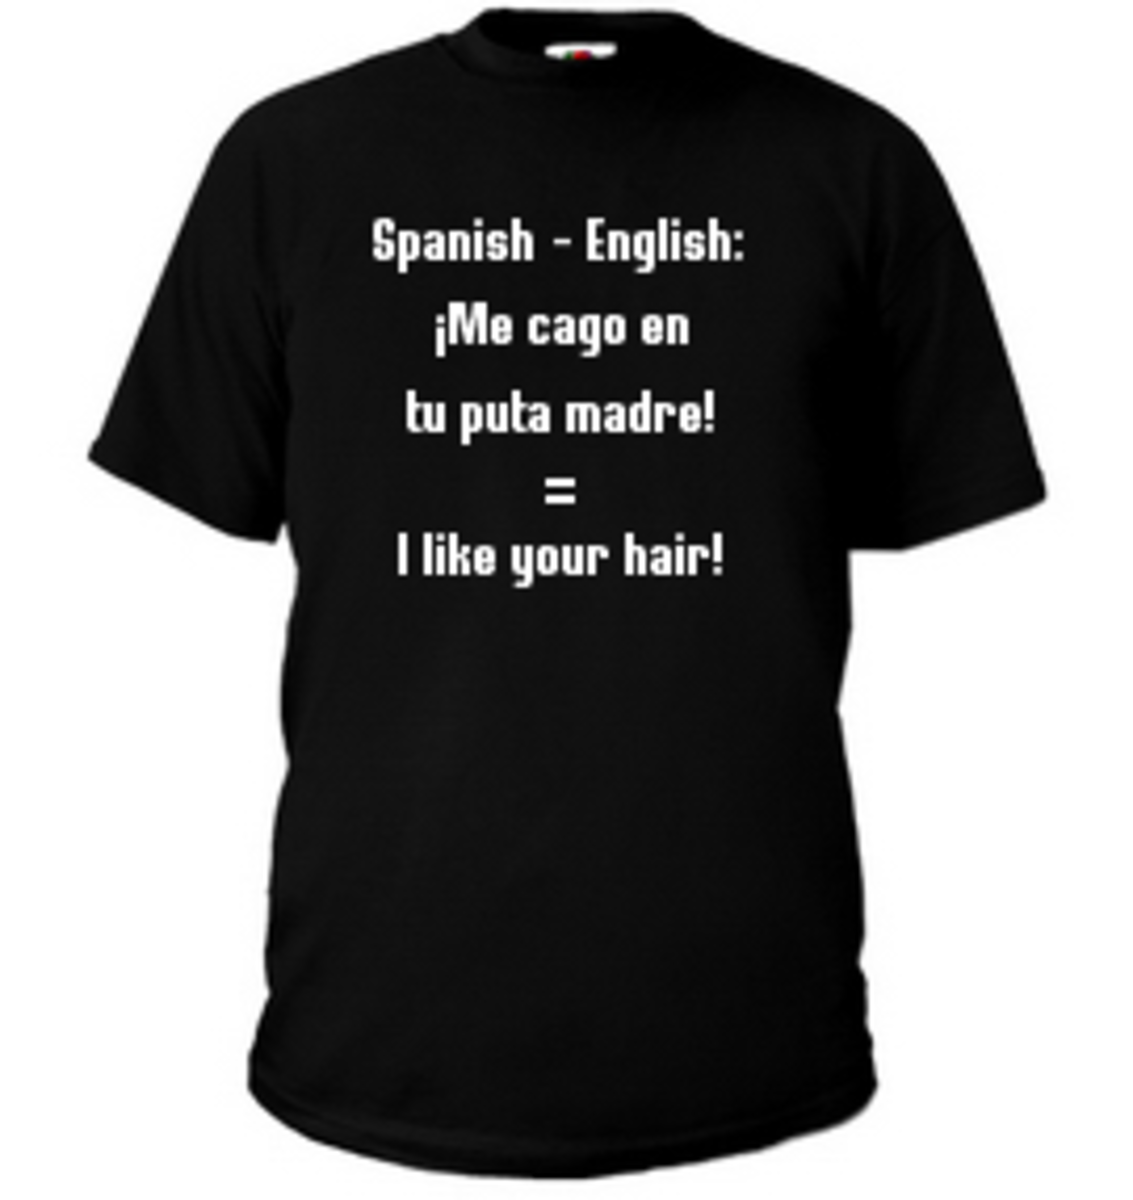 """This does NOT mean I like your hair! Me cago en tu puta madre is really crude. Me cago means """"I sh*t""""."""